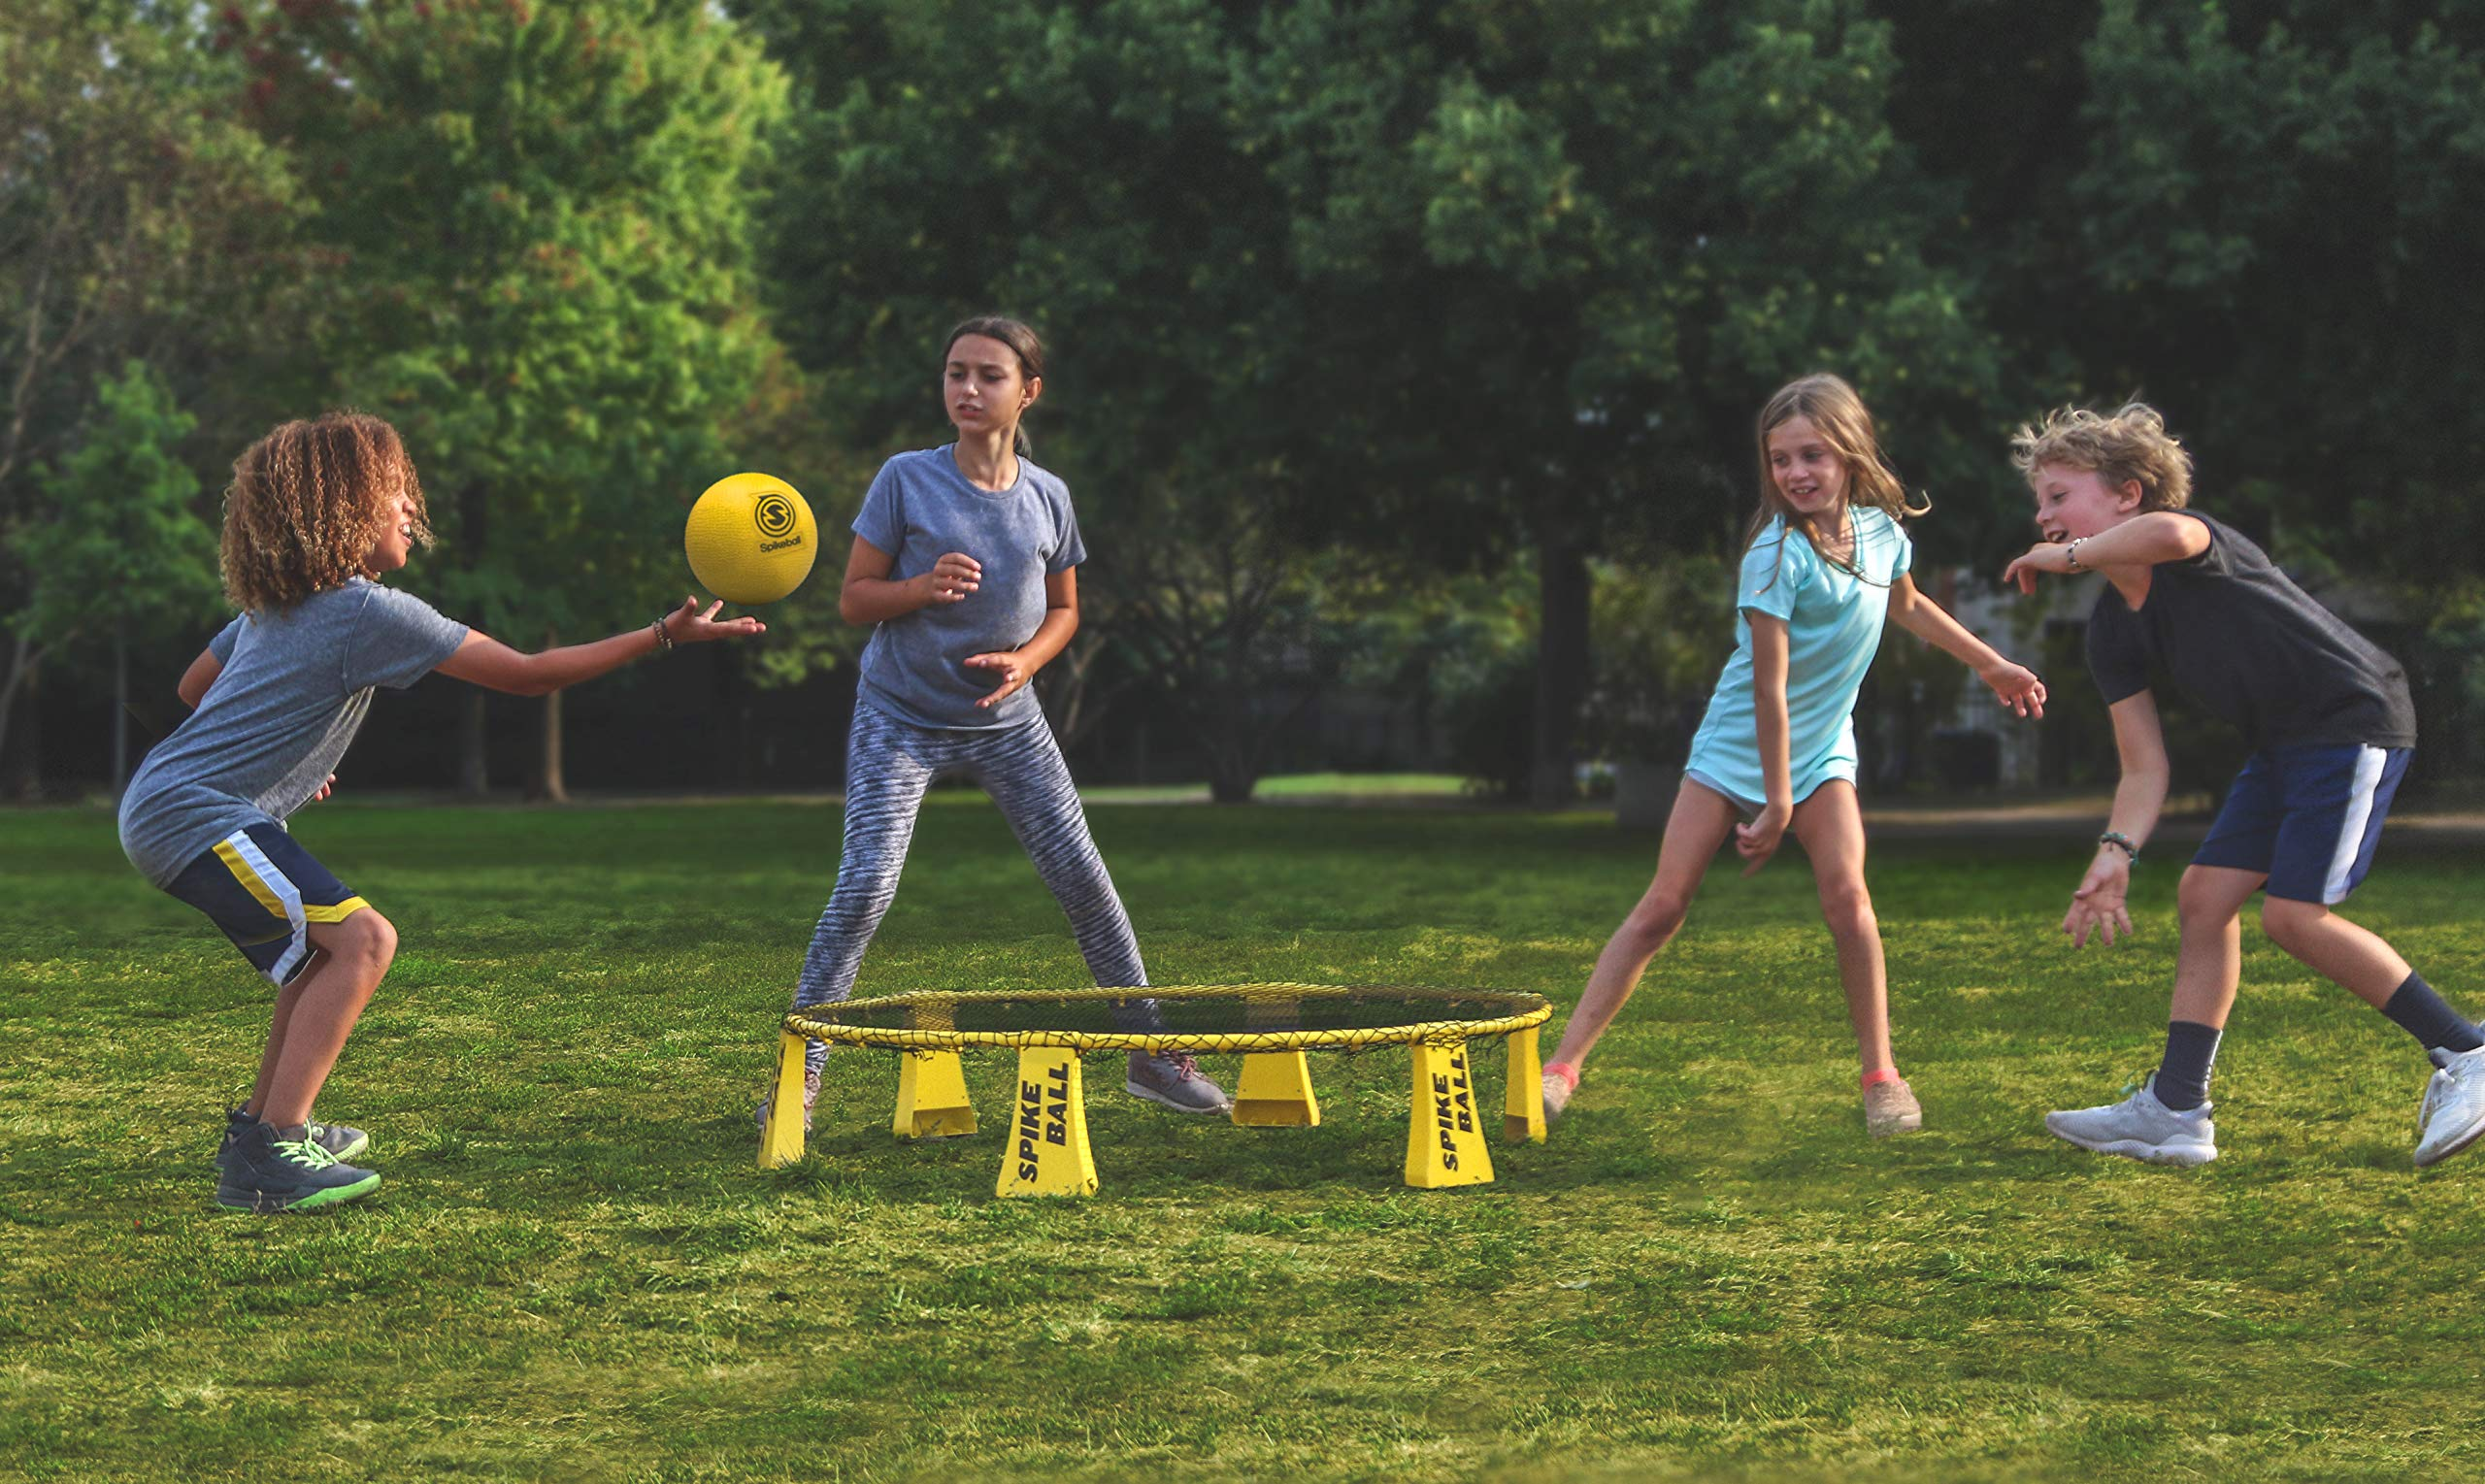 Spikeball Starter Kit - 50% Larger Net and Ball - Played Outdoors, Indoors, Yard, Lawn, Beach - Designed for Kids 12 and Under by Spikeball (Image #4)